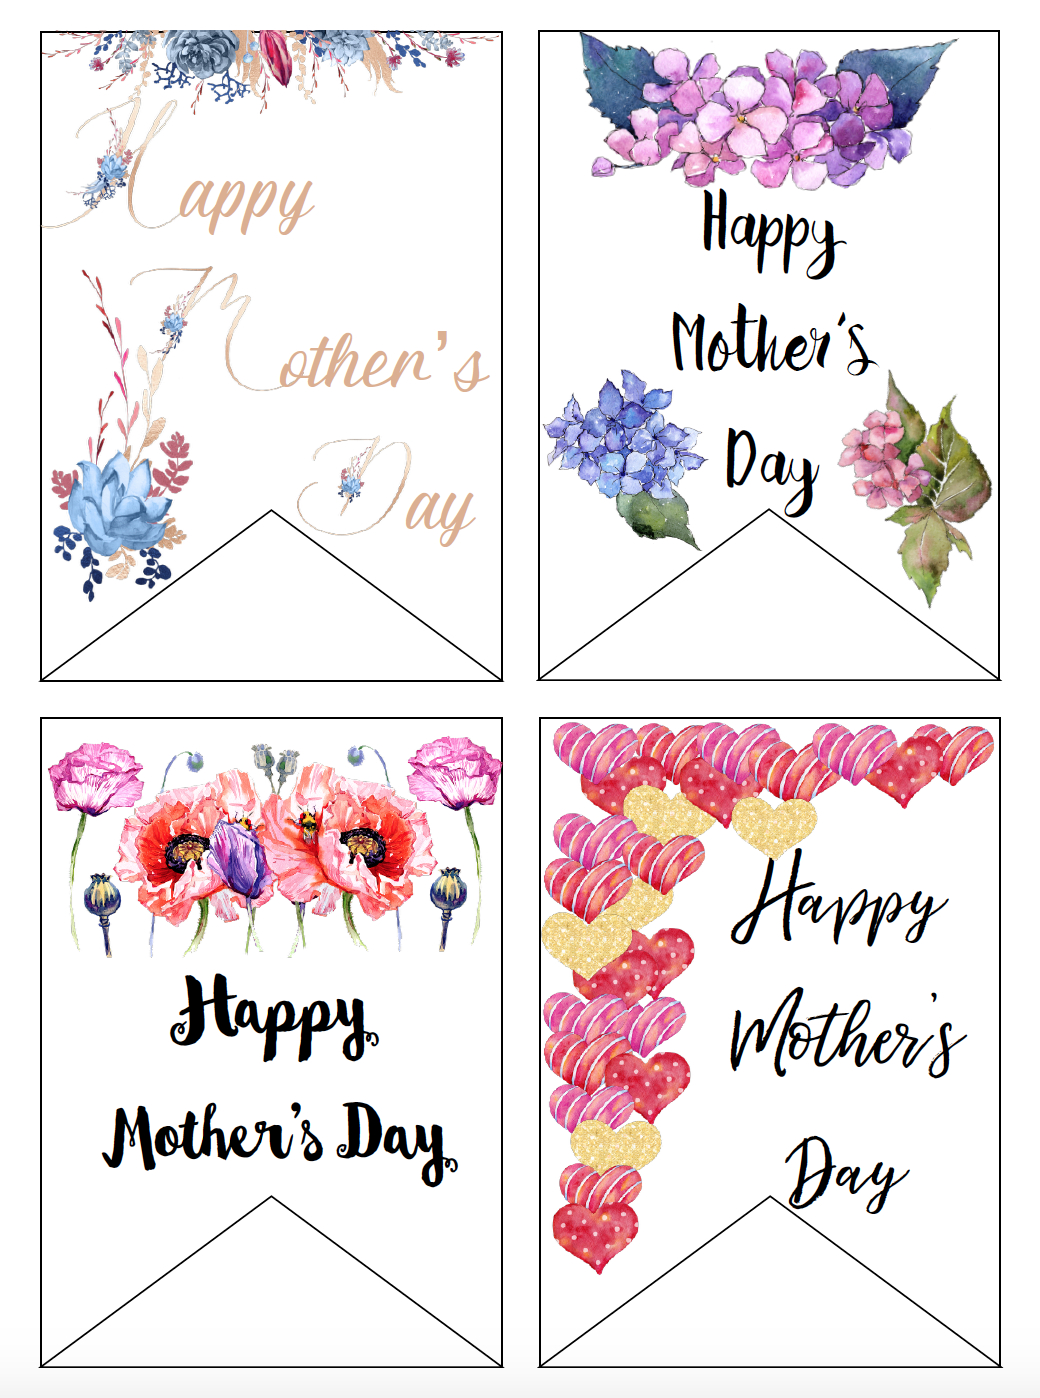 Free Printable Mother's Day Cards And Gift Tags - Free Printable Mothers Day Gifts